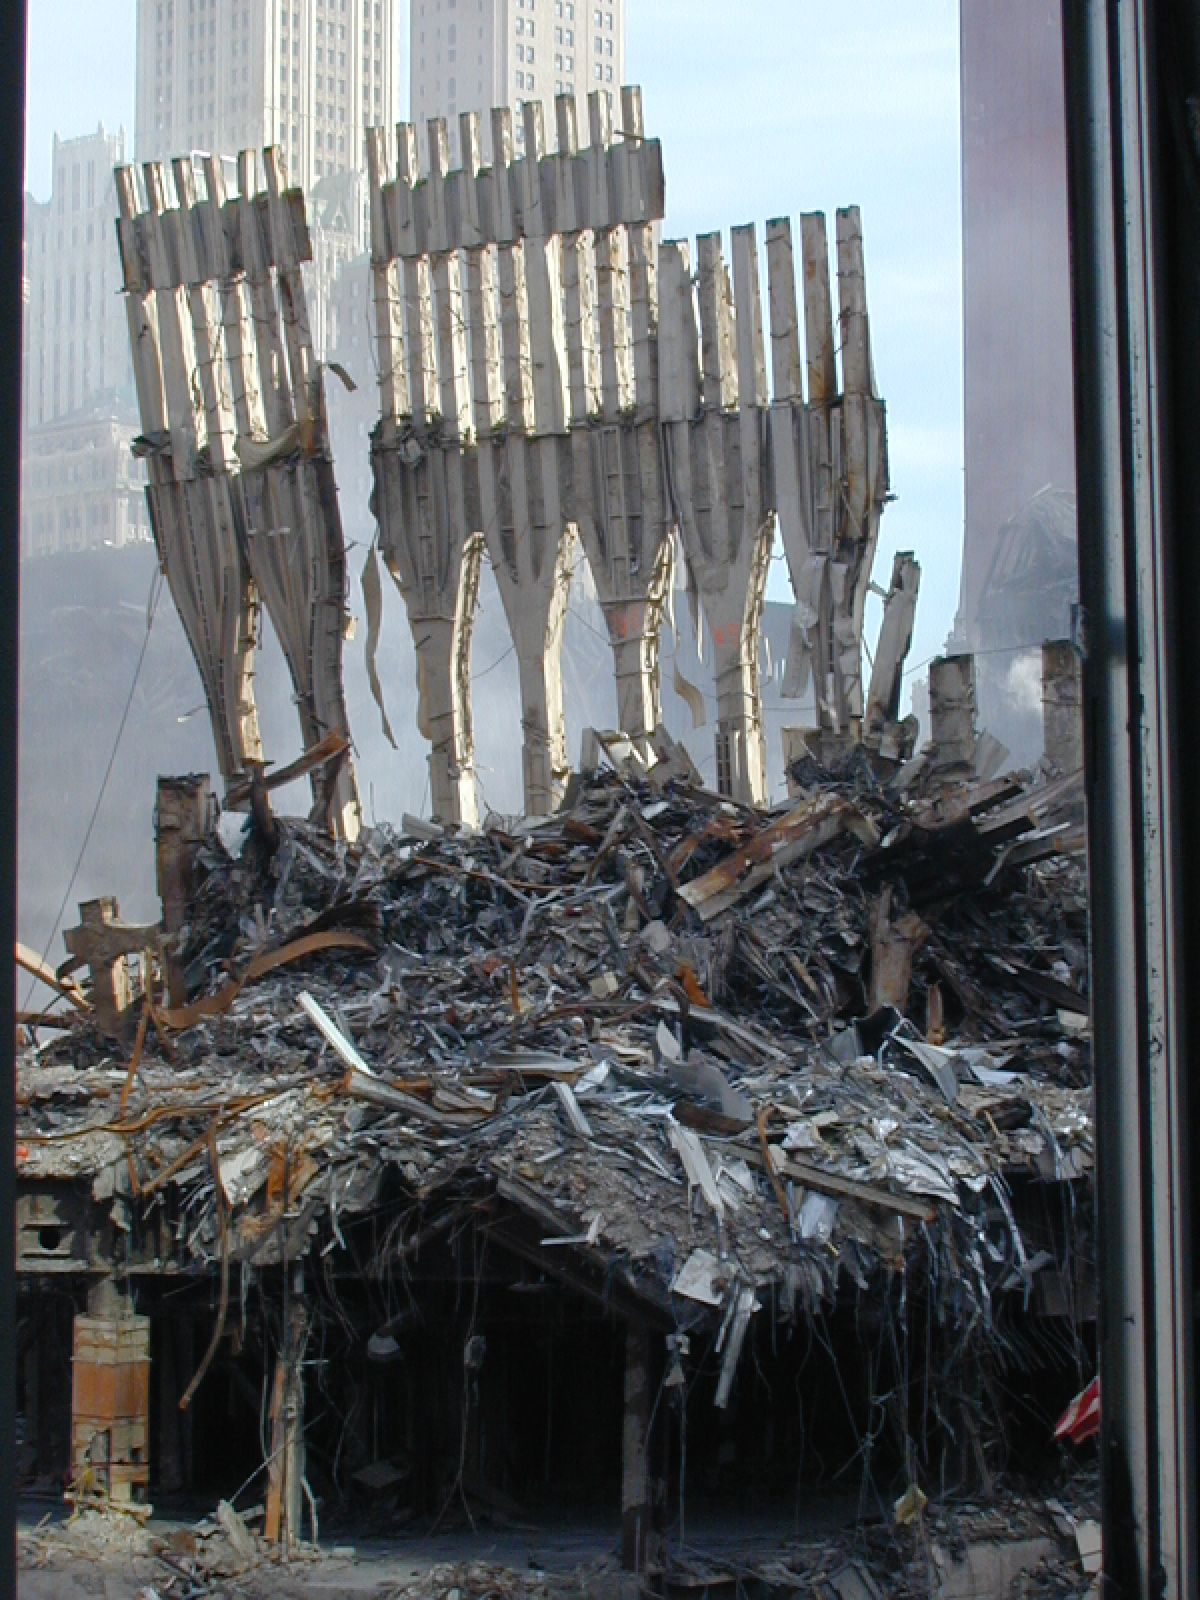 Aftermath  9/11,   Ground Zero, September 11, 2001, never forget, the day the world changed, rubbles, ruins, terrorist attack, photograph, photo